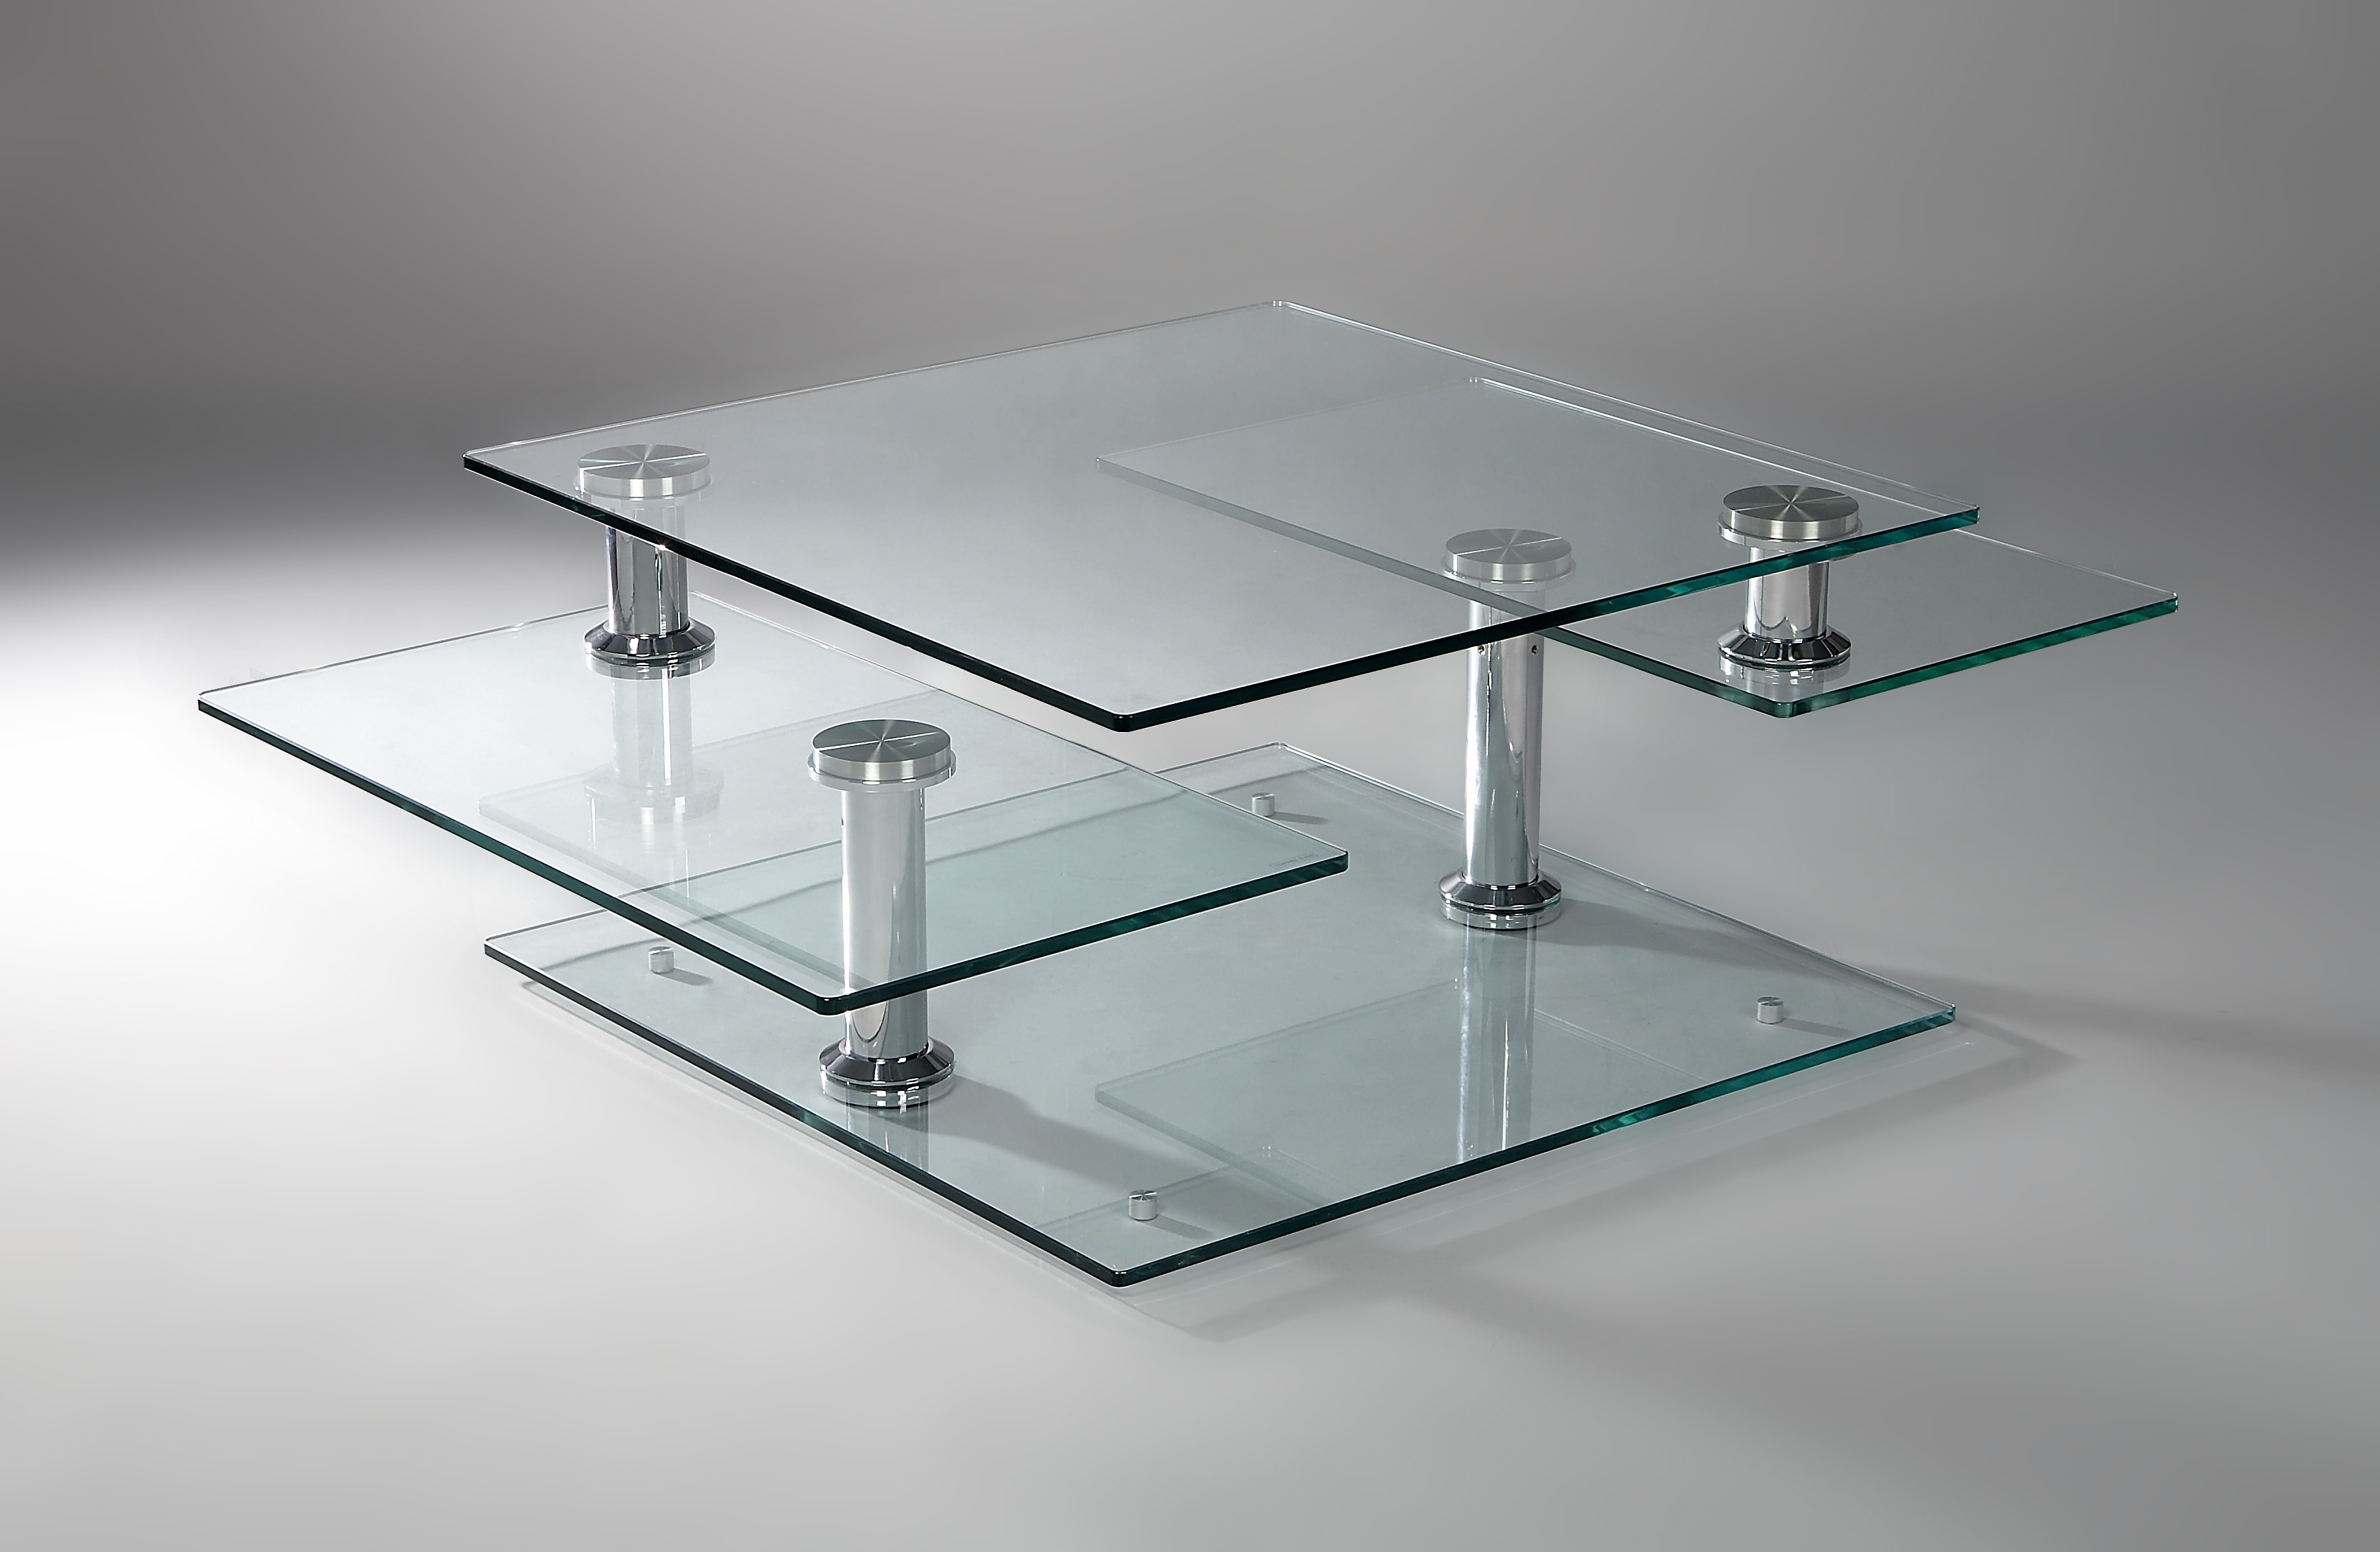 Table basse design en verre trempe Table en verre design